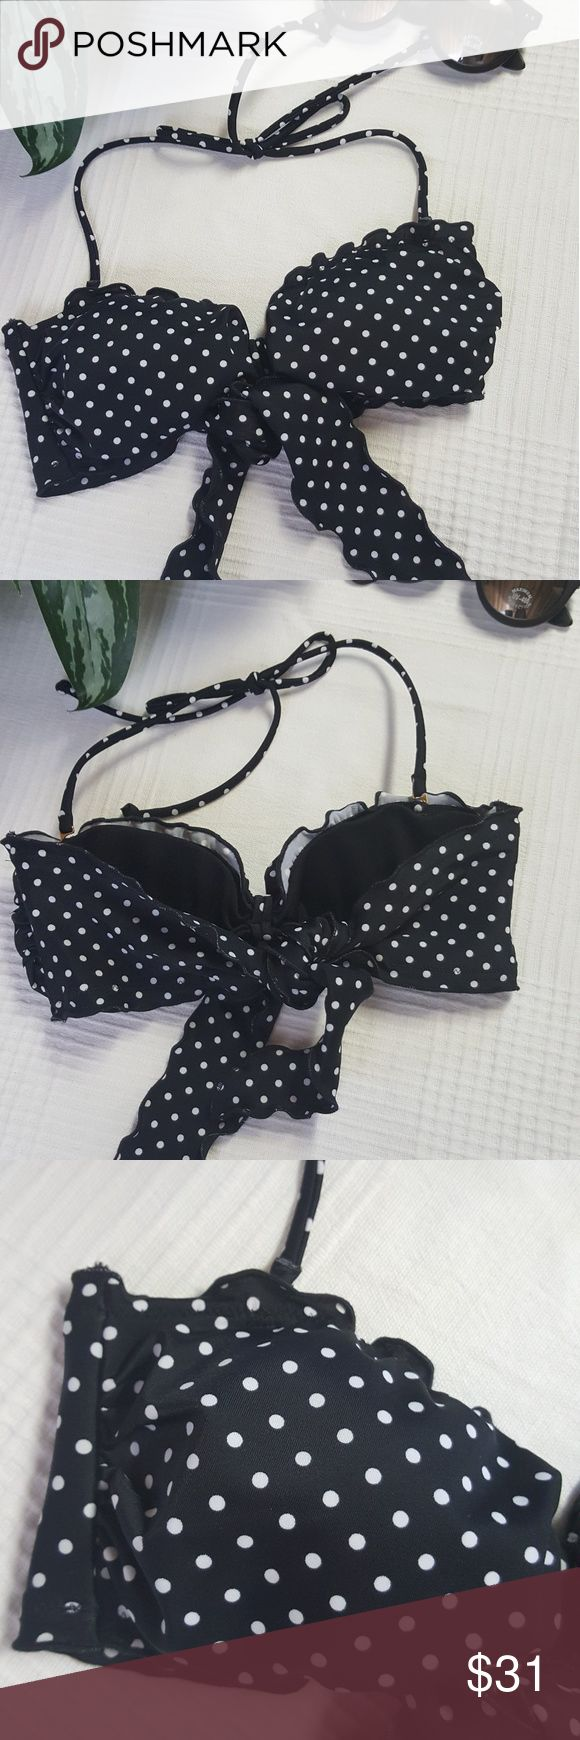 Victoria's Secret Polka Dot Bandeau Bikini Top New without tags. VS bandeau style bikini with halter strap. Black and white polka-dots. Size small. Victoria's Secret Swim Bikinis